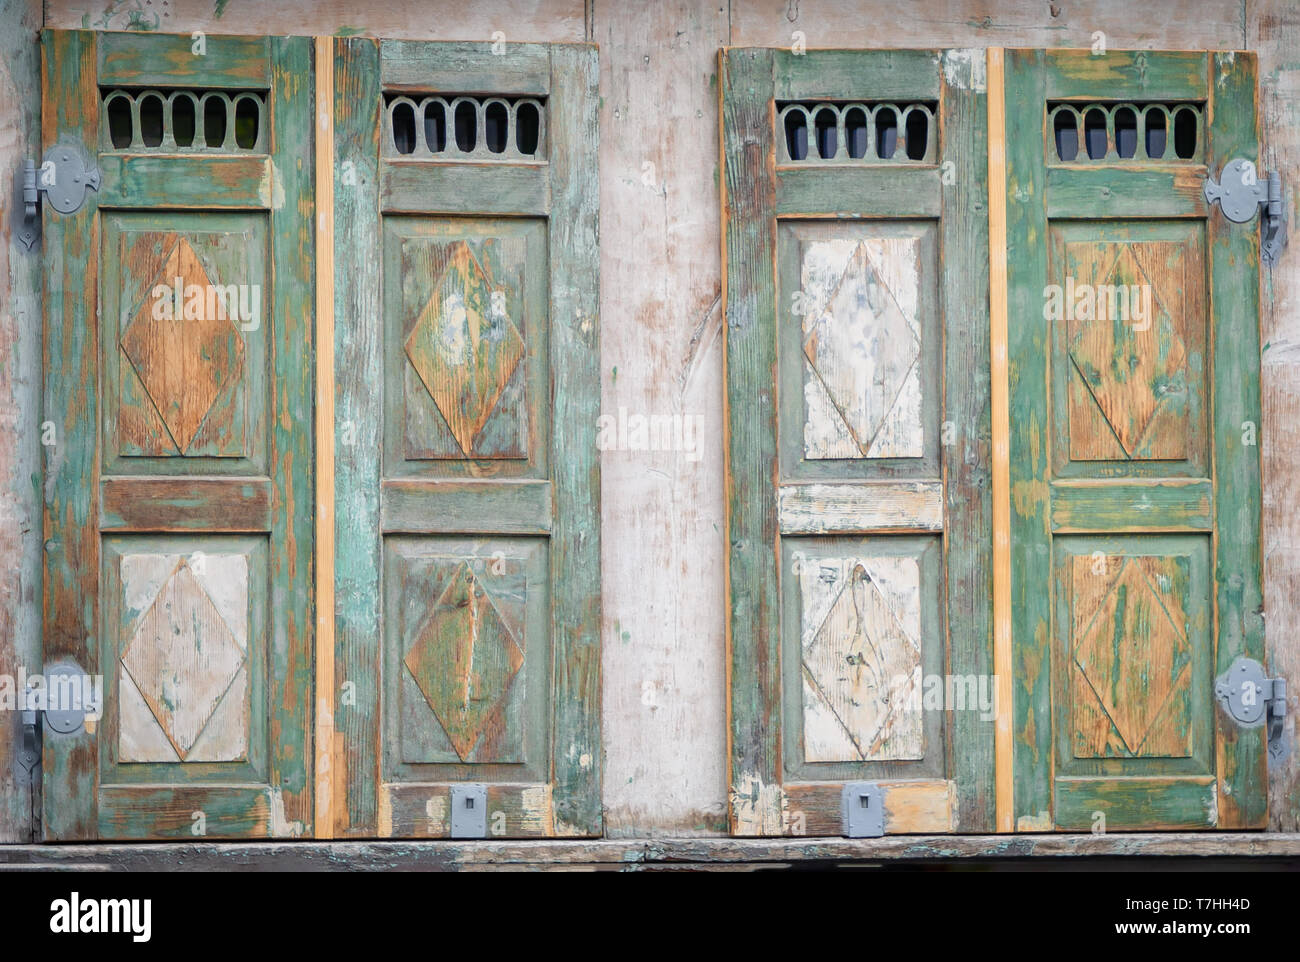 Old vintage wooden windows shutters. Yellow and green tones. Details - Stock Image